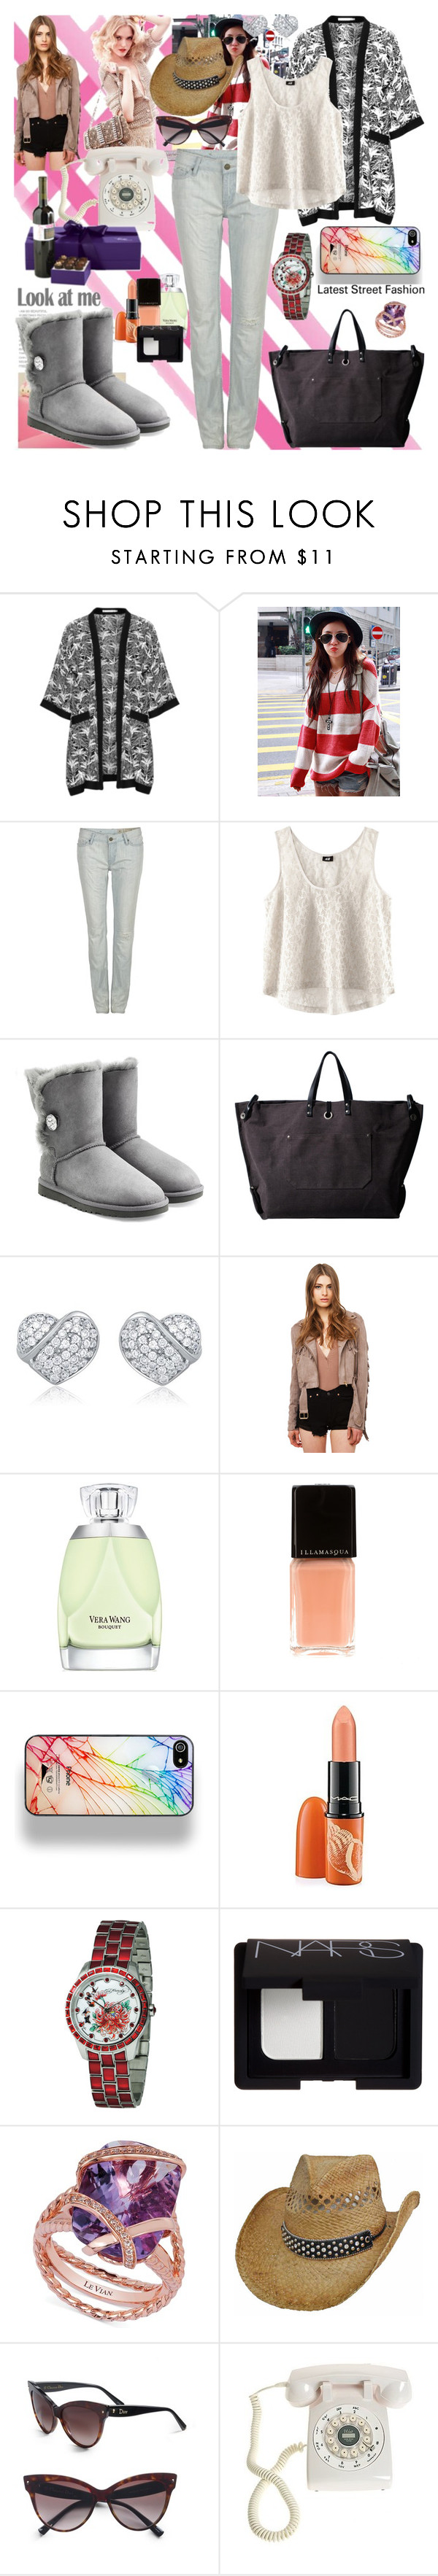 """500 Letters..."" by black-wings ❤ liked on Polyvore featuring Studio, AllSaints, H&M, UGG Australia, Hideout, Akira Black Label, Vera Wang, Illamasqua, Zero Gravity and MAC Cosmetics"